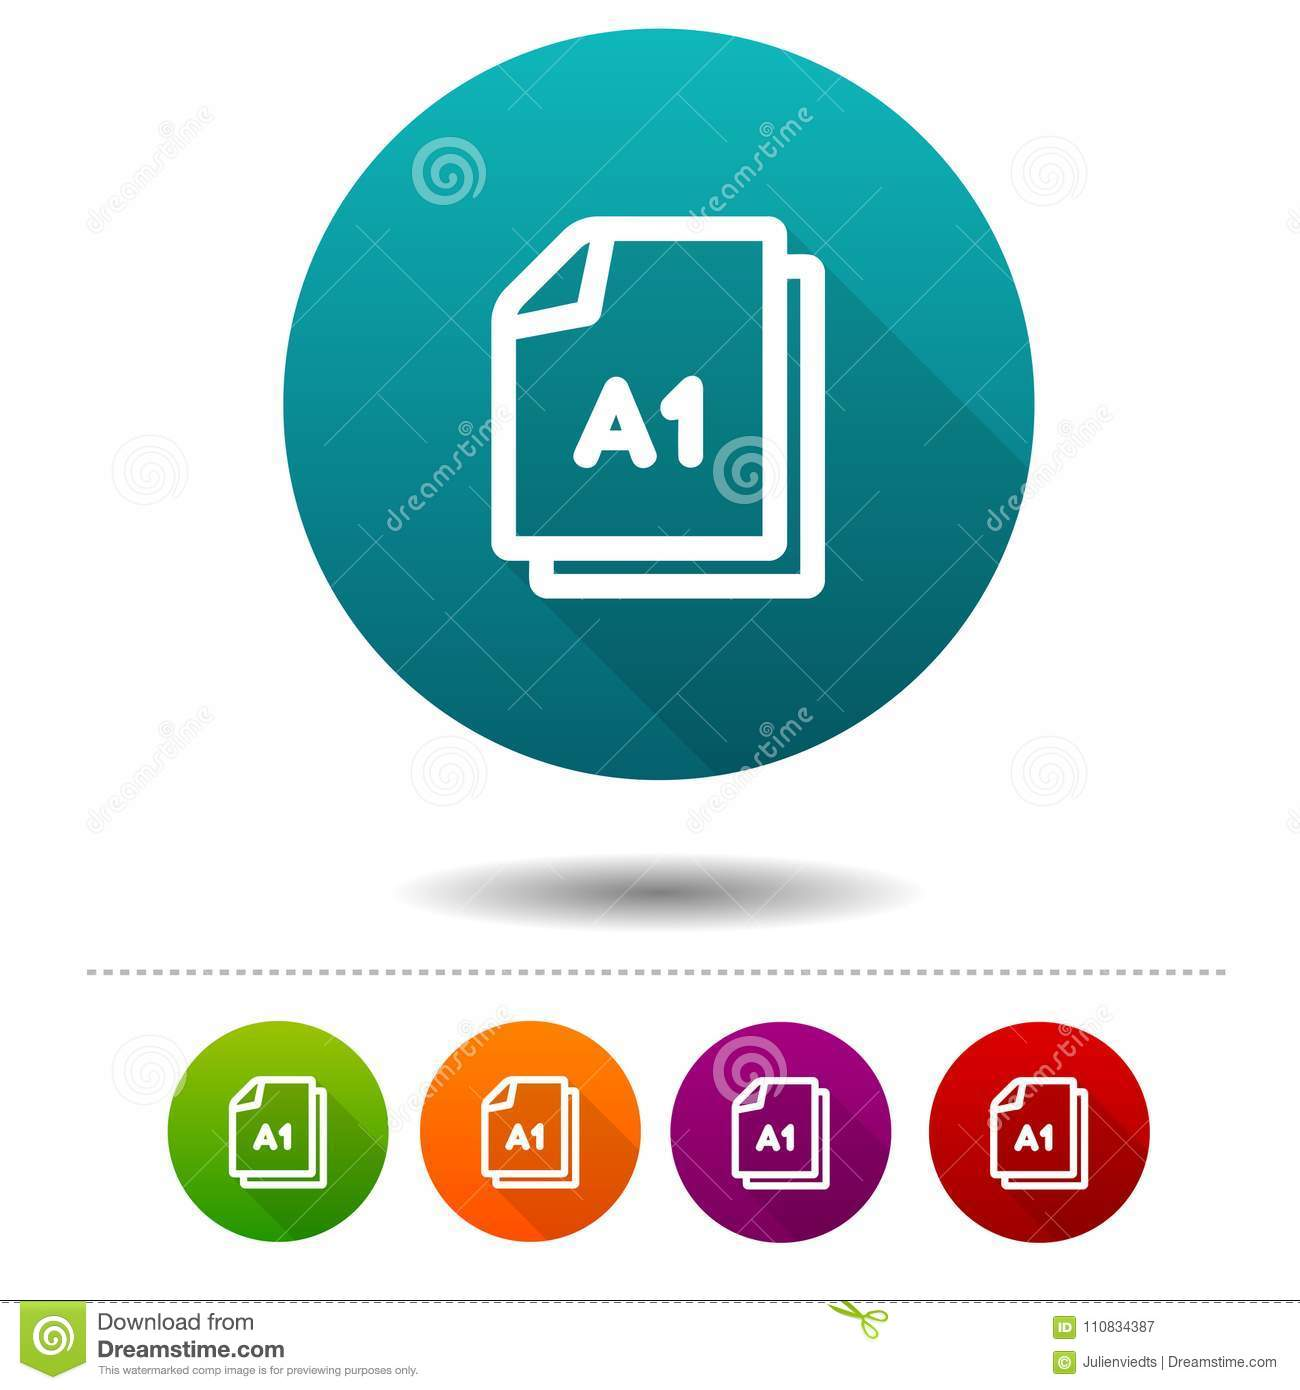 A A1 Din Paper Size A1 Icon Document Din Symbol Sign Web Button Stock